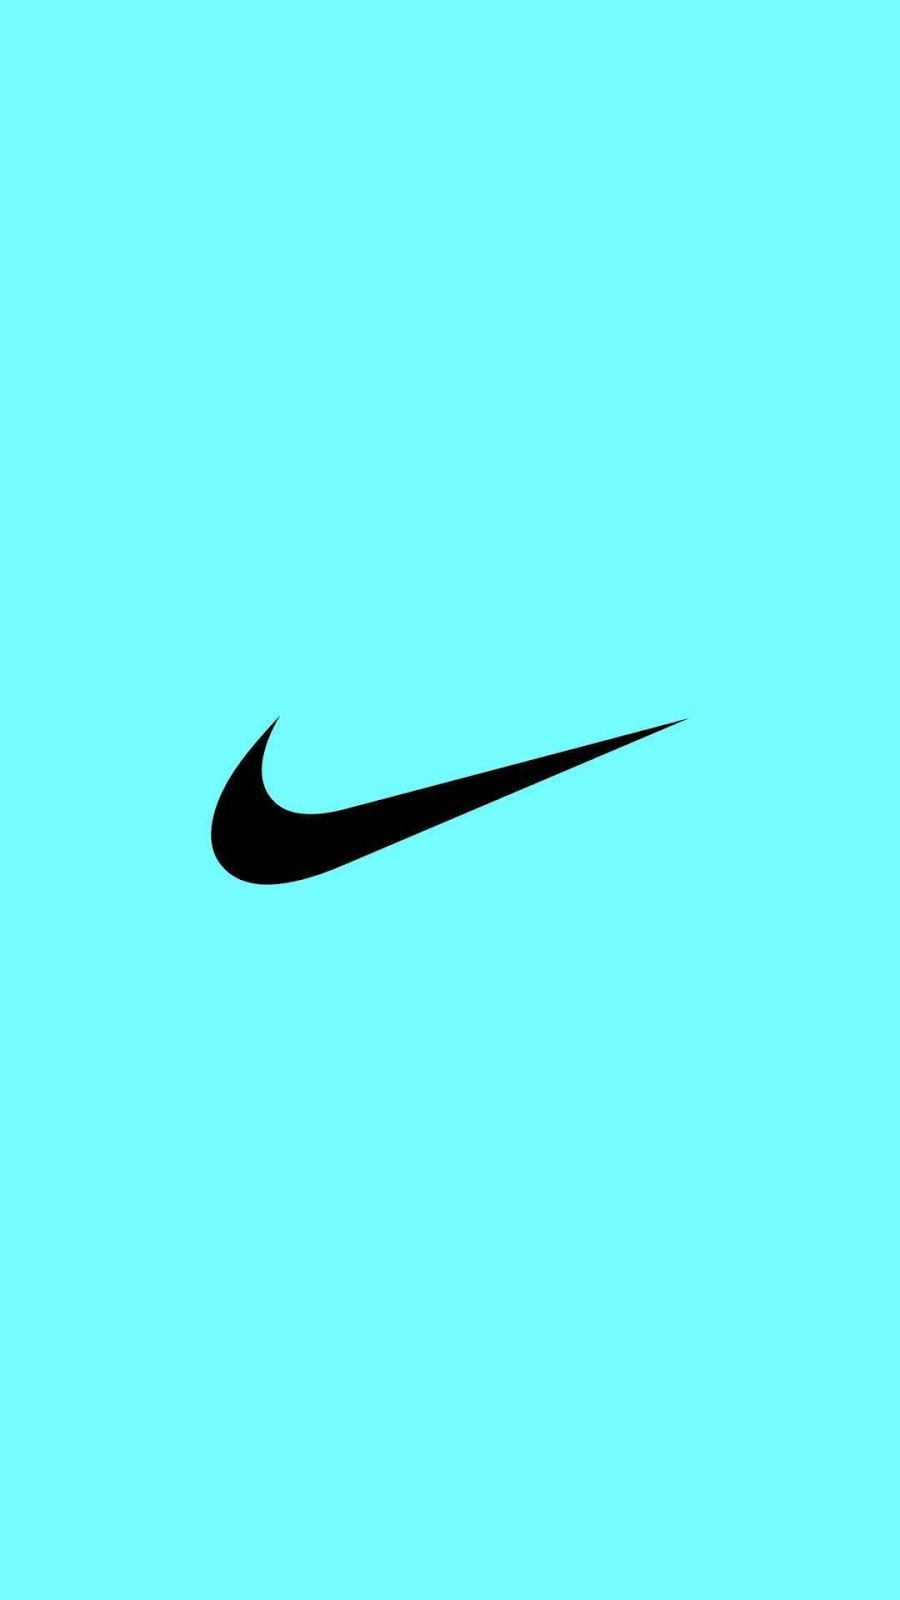 Nike Iphone Wallpapers Hd Nike Wallpaper Iphone Nike Wallpaper Apple Wallpaper Iphone